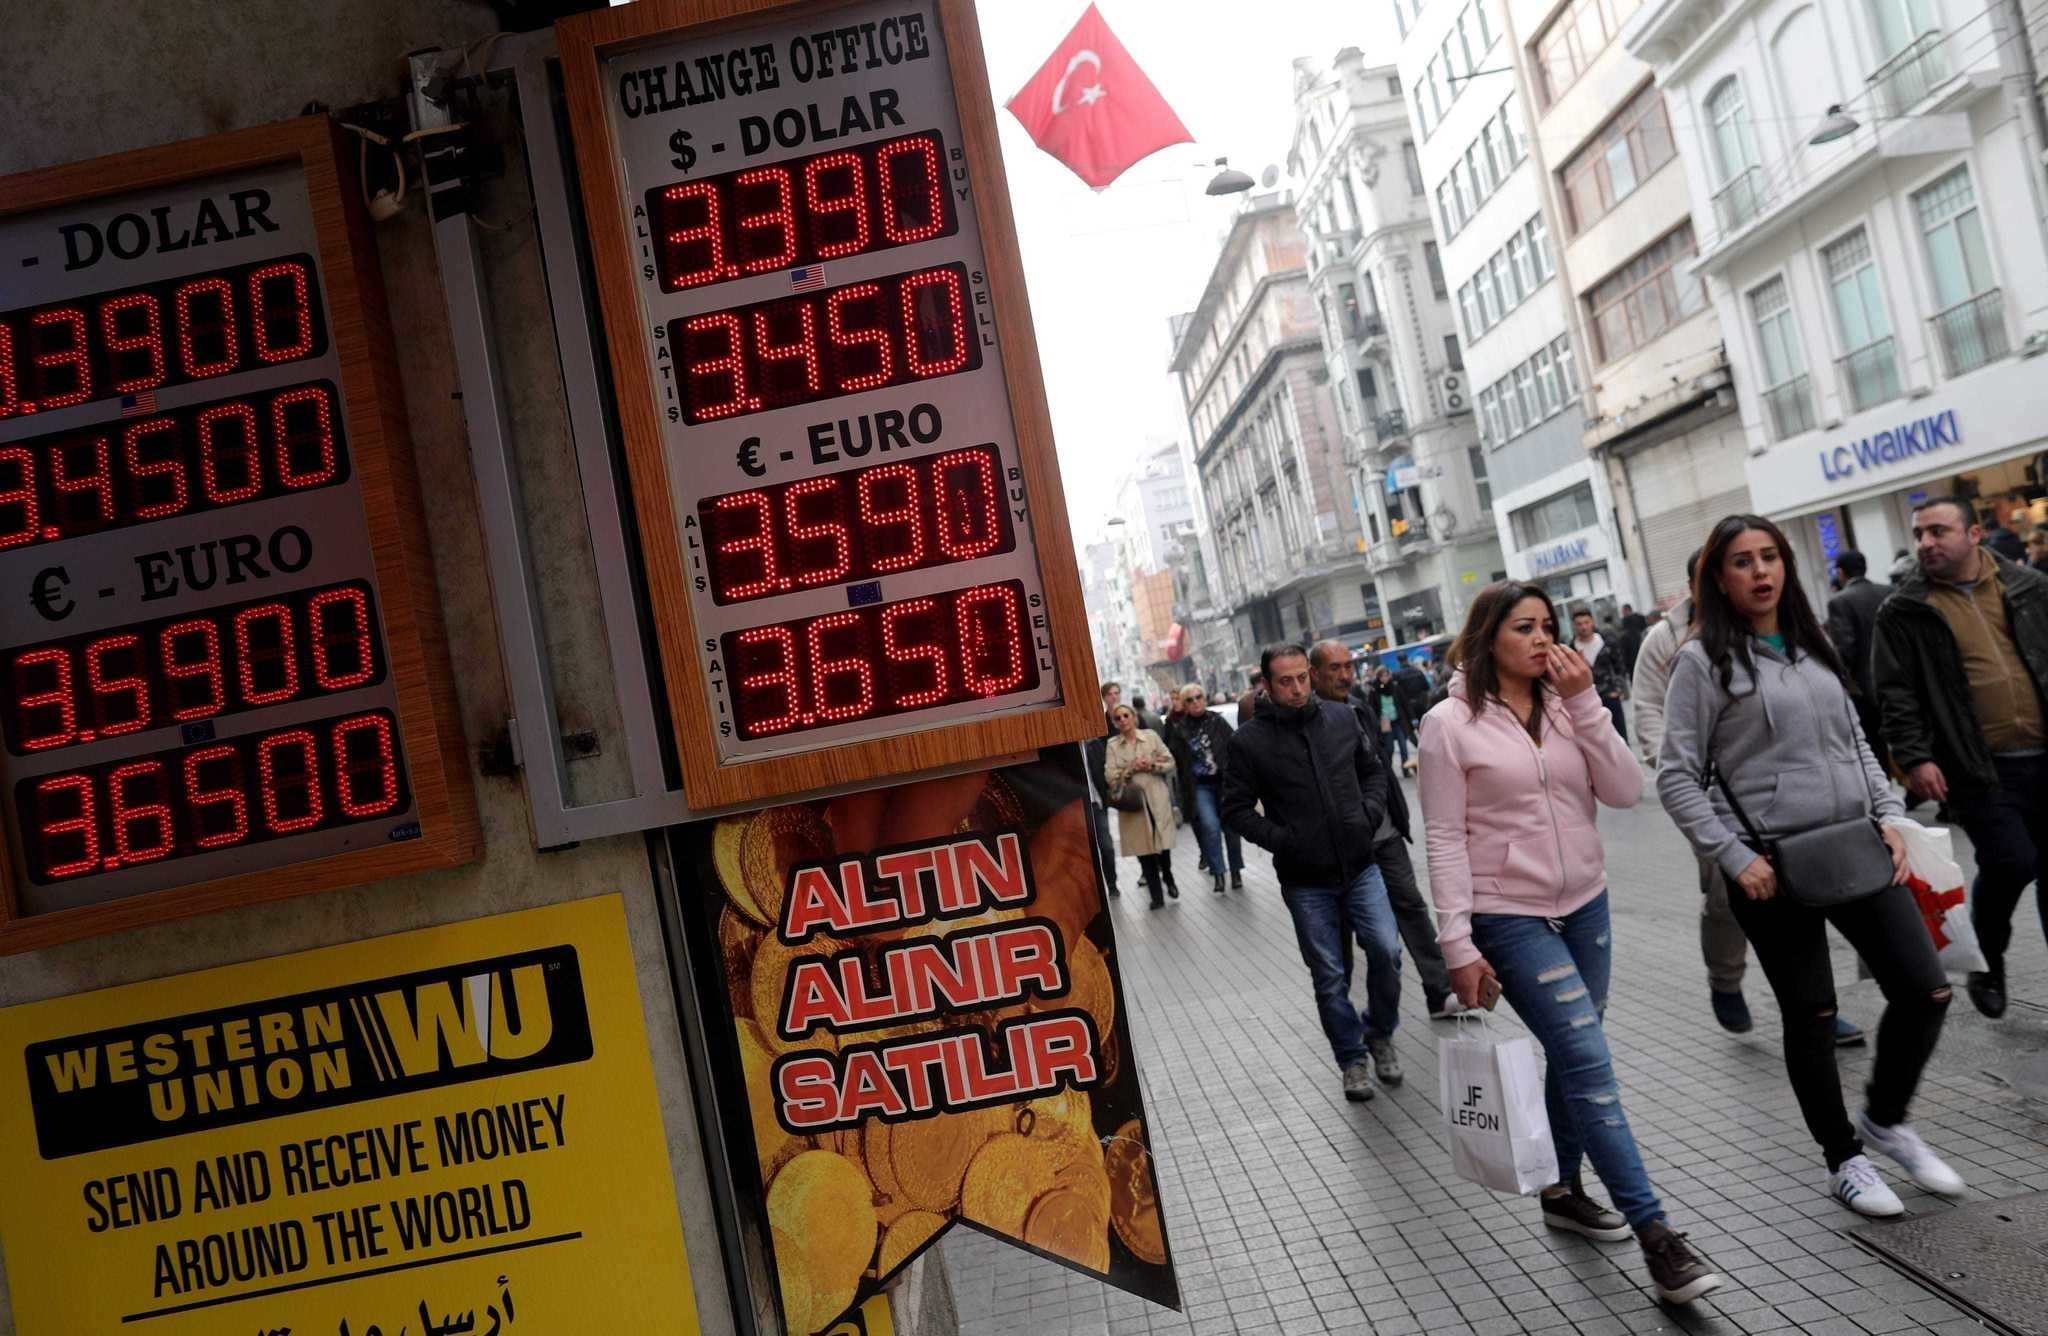 People walk near an exchange office on Istiklal Street in Istanbul.